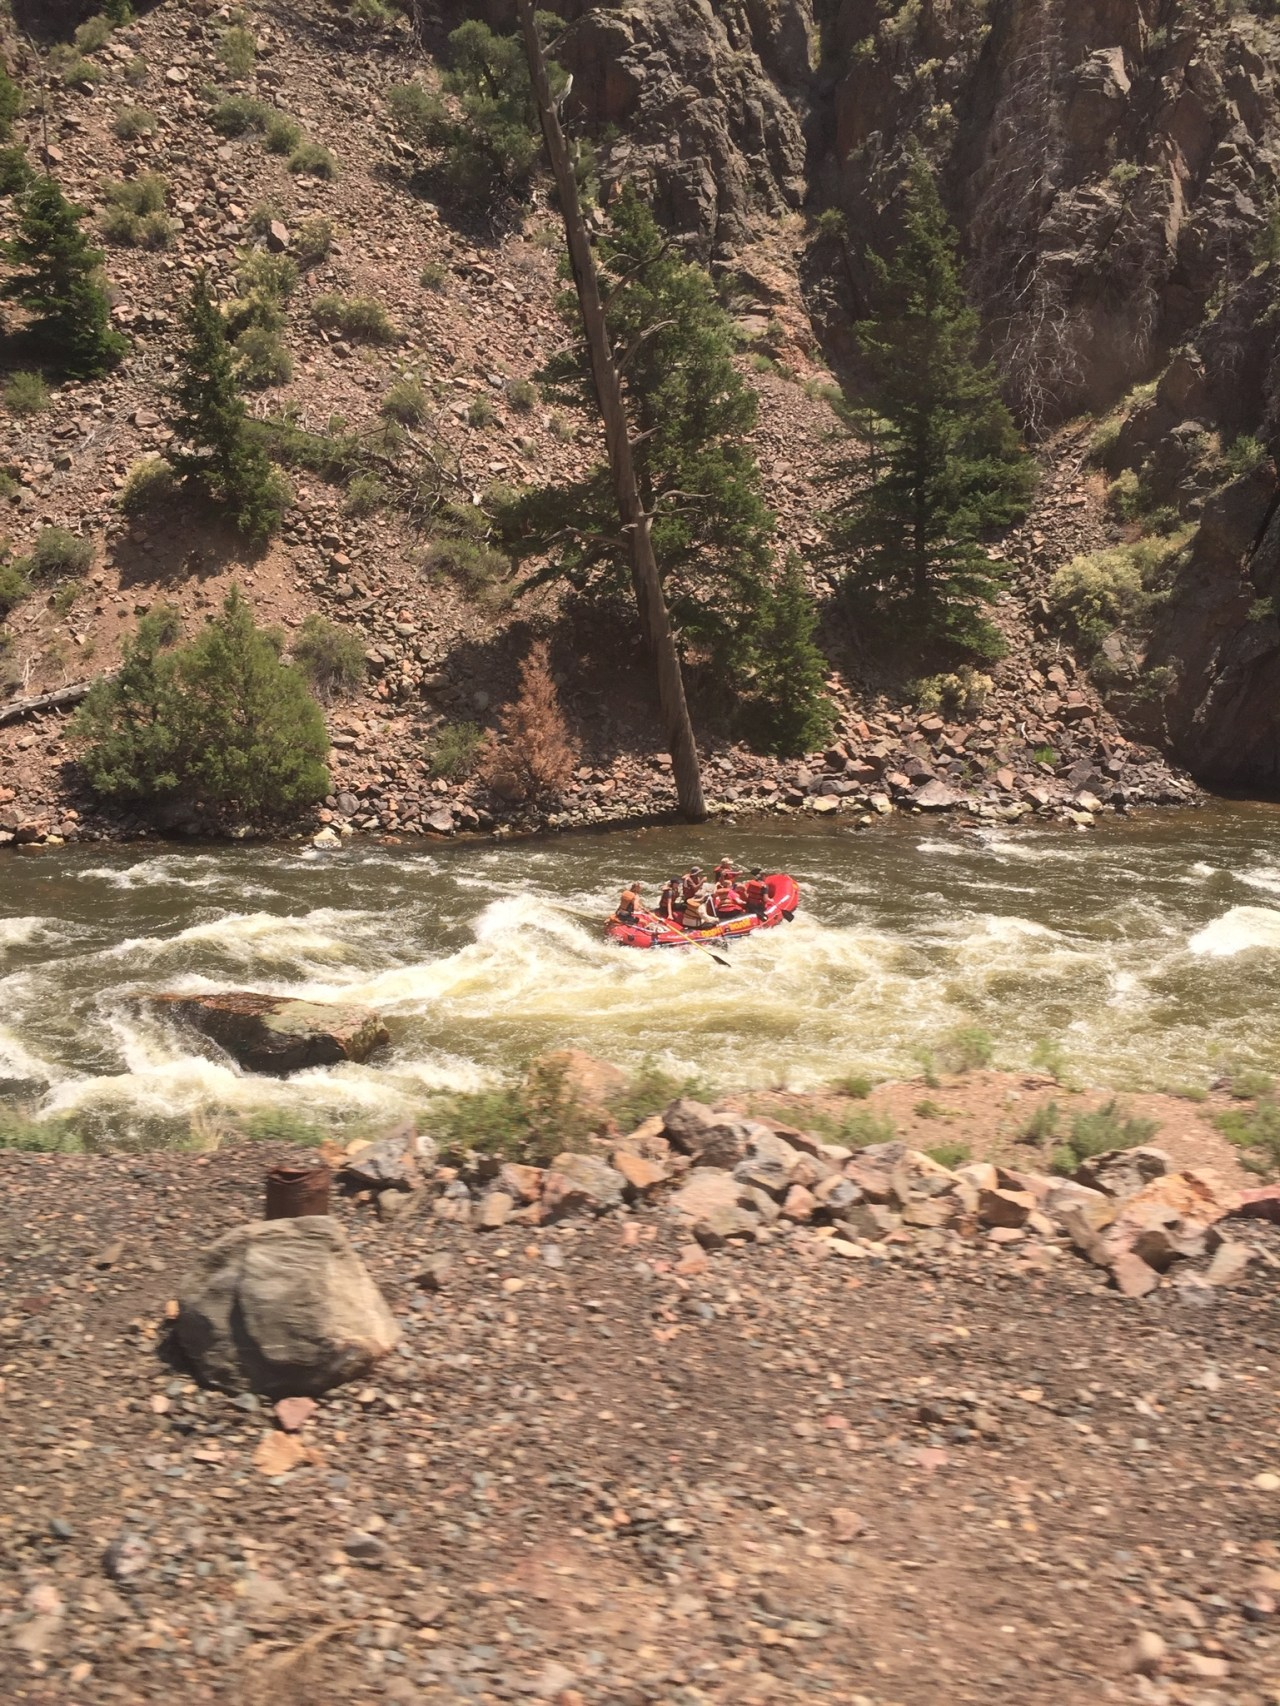 Rafting the Fraser River in Colorado as seen from the California Zephyr